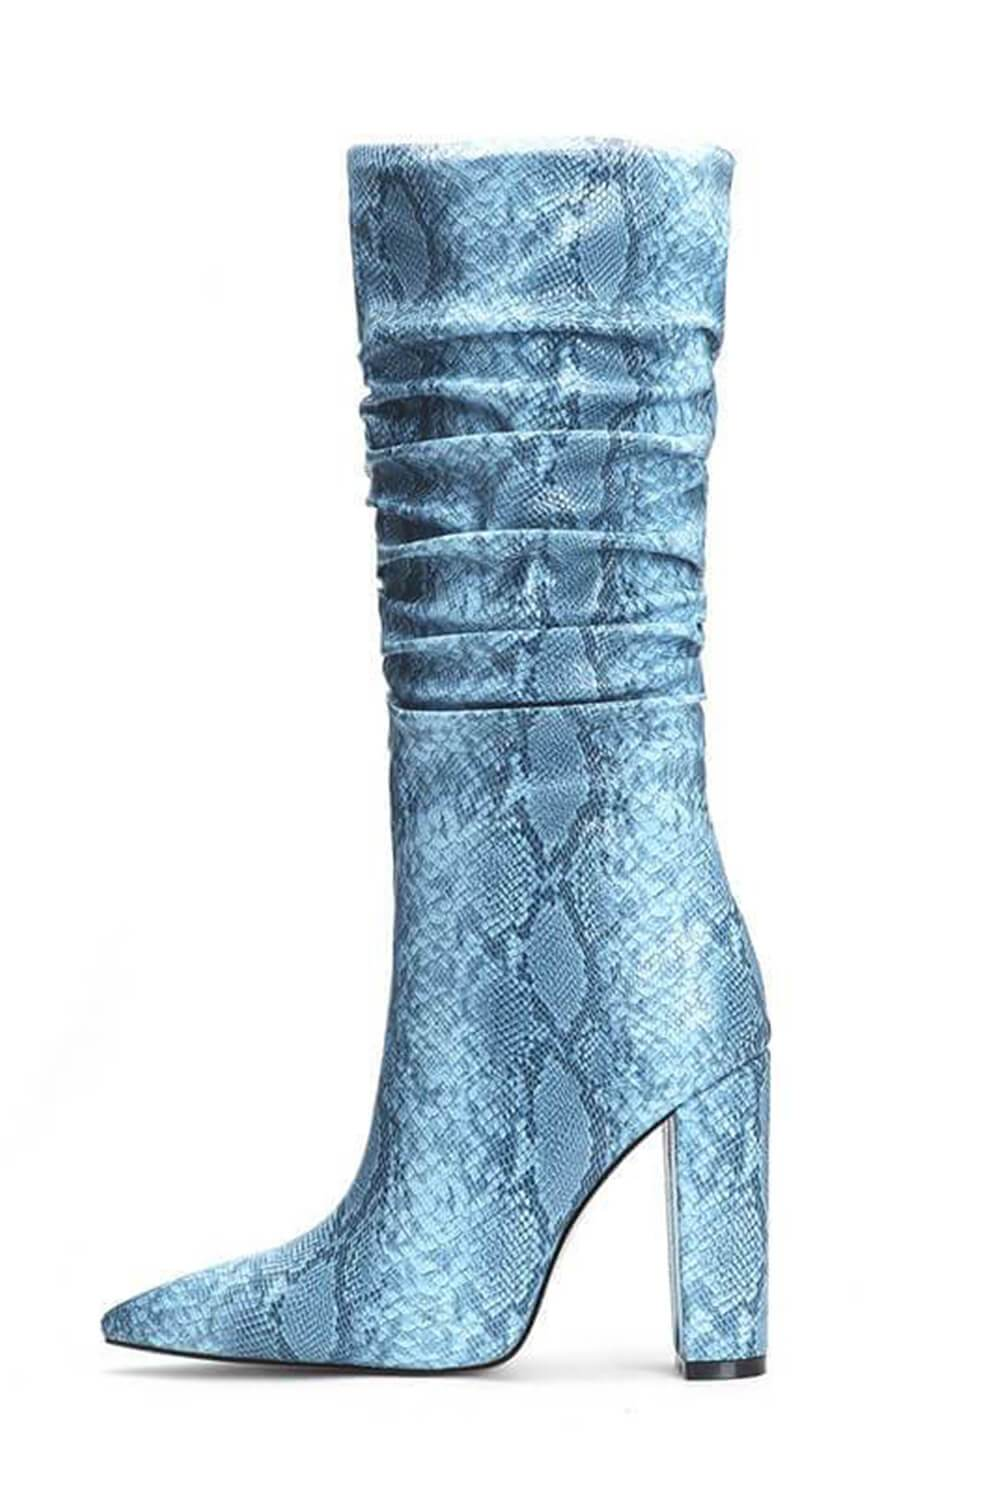 Light Blue Snakeskin Ruched Knee High Boots (4307980812347)